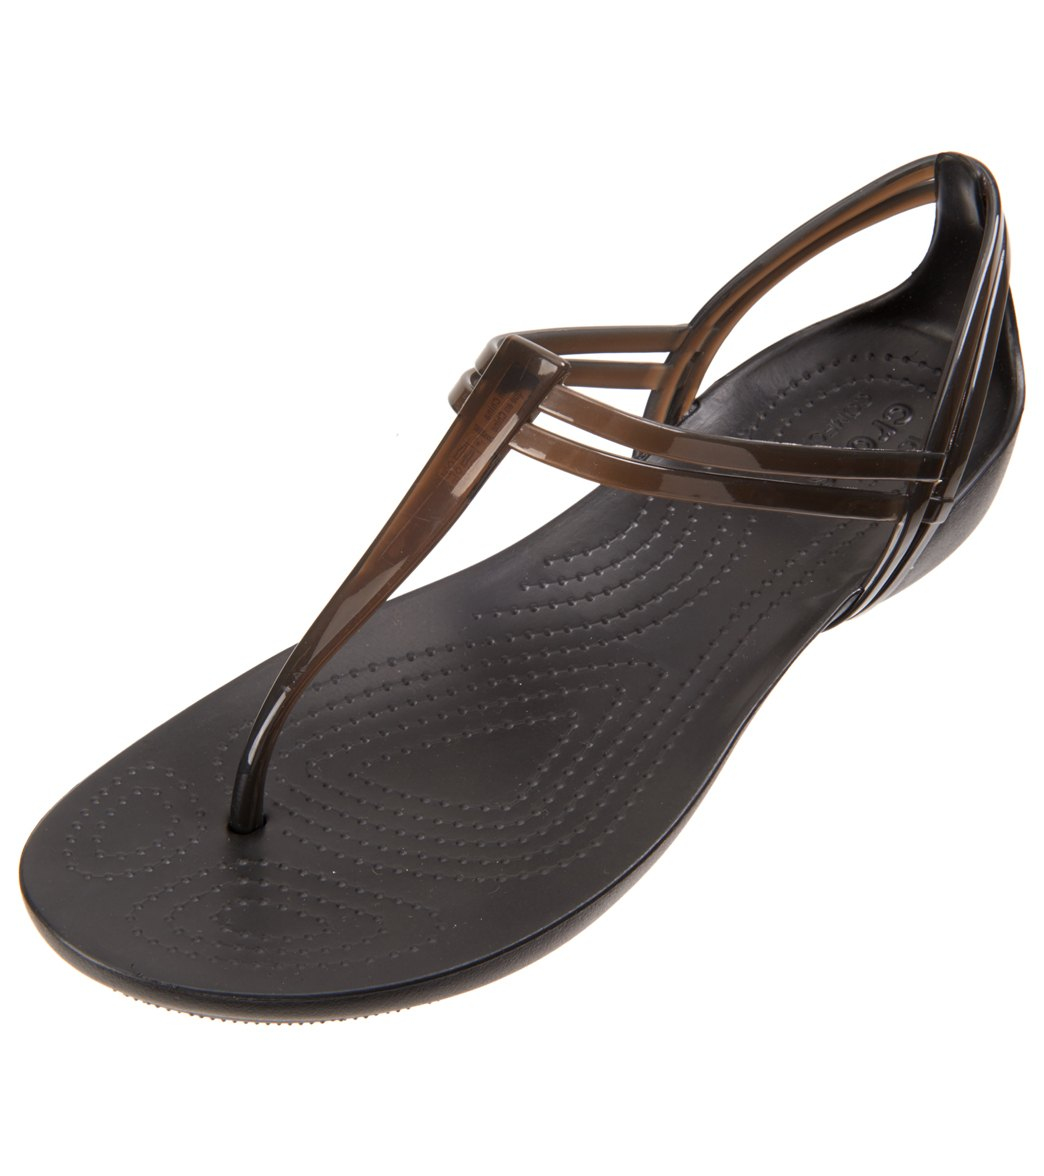 844648b2e72d Crocs Women s Crocs Isabella T-Strap at SwimOutlet.com